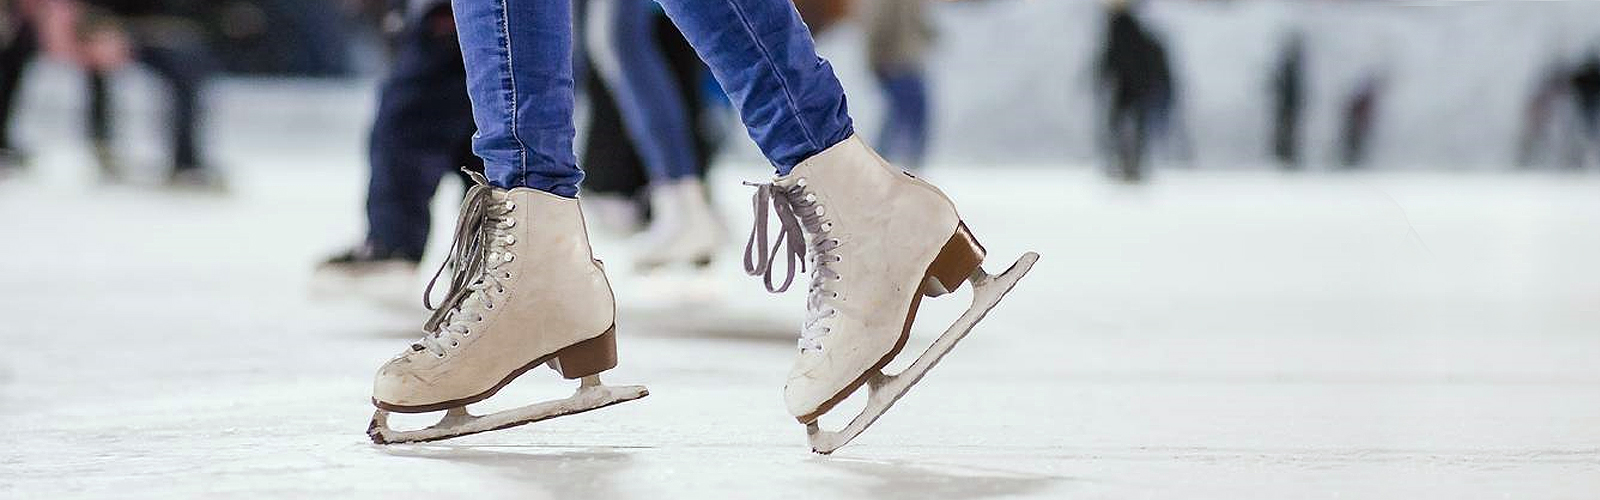 Image result for skating